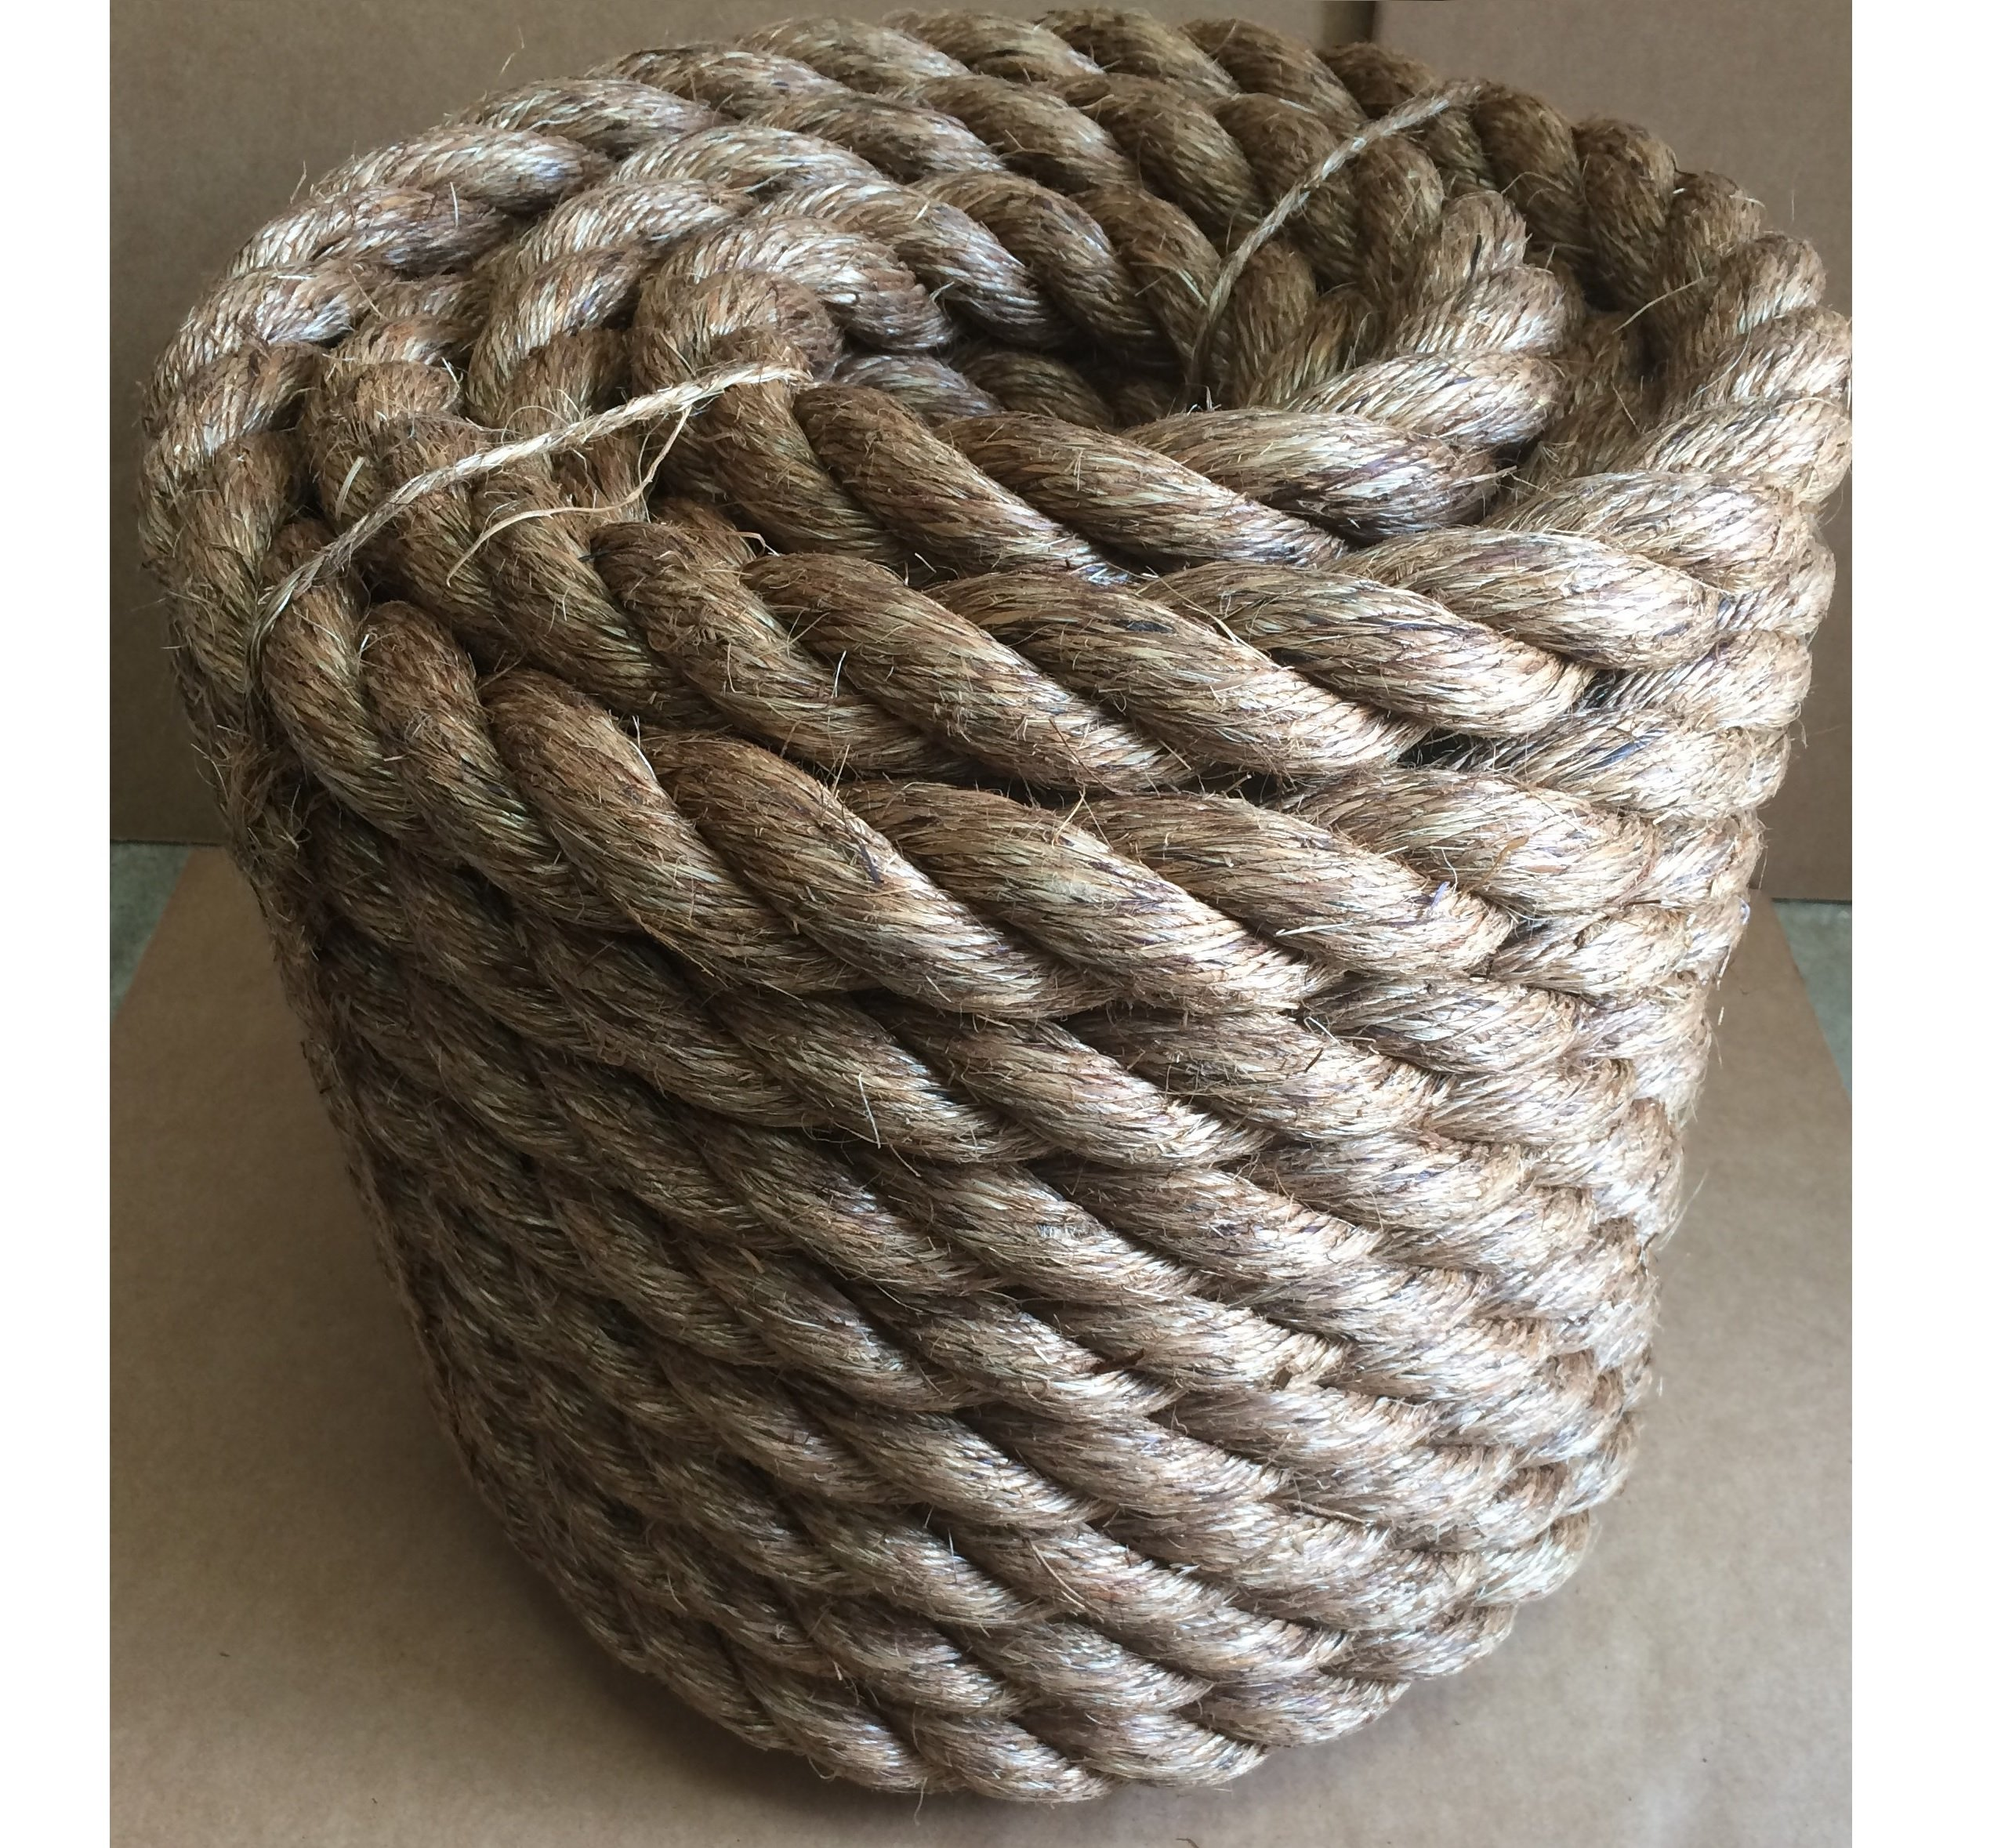 1-1/2'' X 100' (1.5'')MANILA ROPE Boat docks Tree Farm Crafts FITNESS EXERCISE UNDULATION by Rushazzled